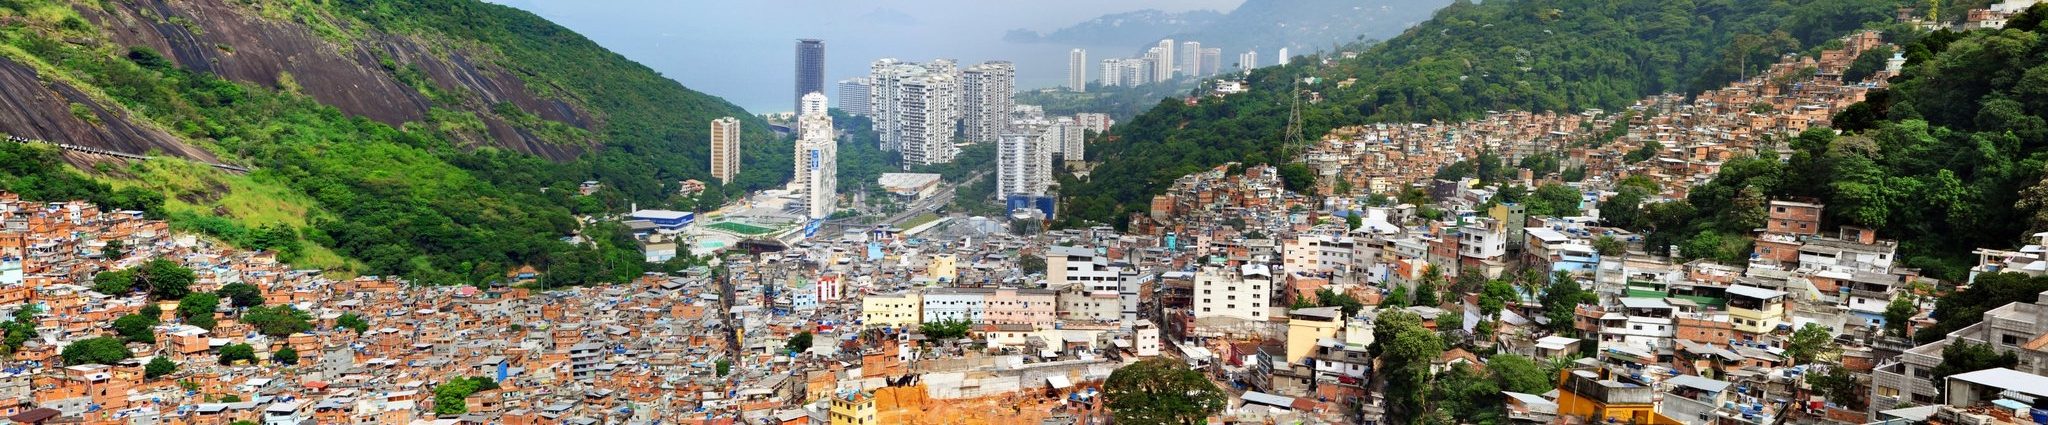 https://i0.wp.com/upload.wikimedia.org/wikipedia/commons/8/85/1_rocinha_favela_panorama_2010.jpg